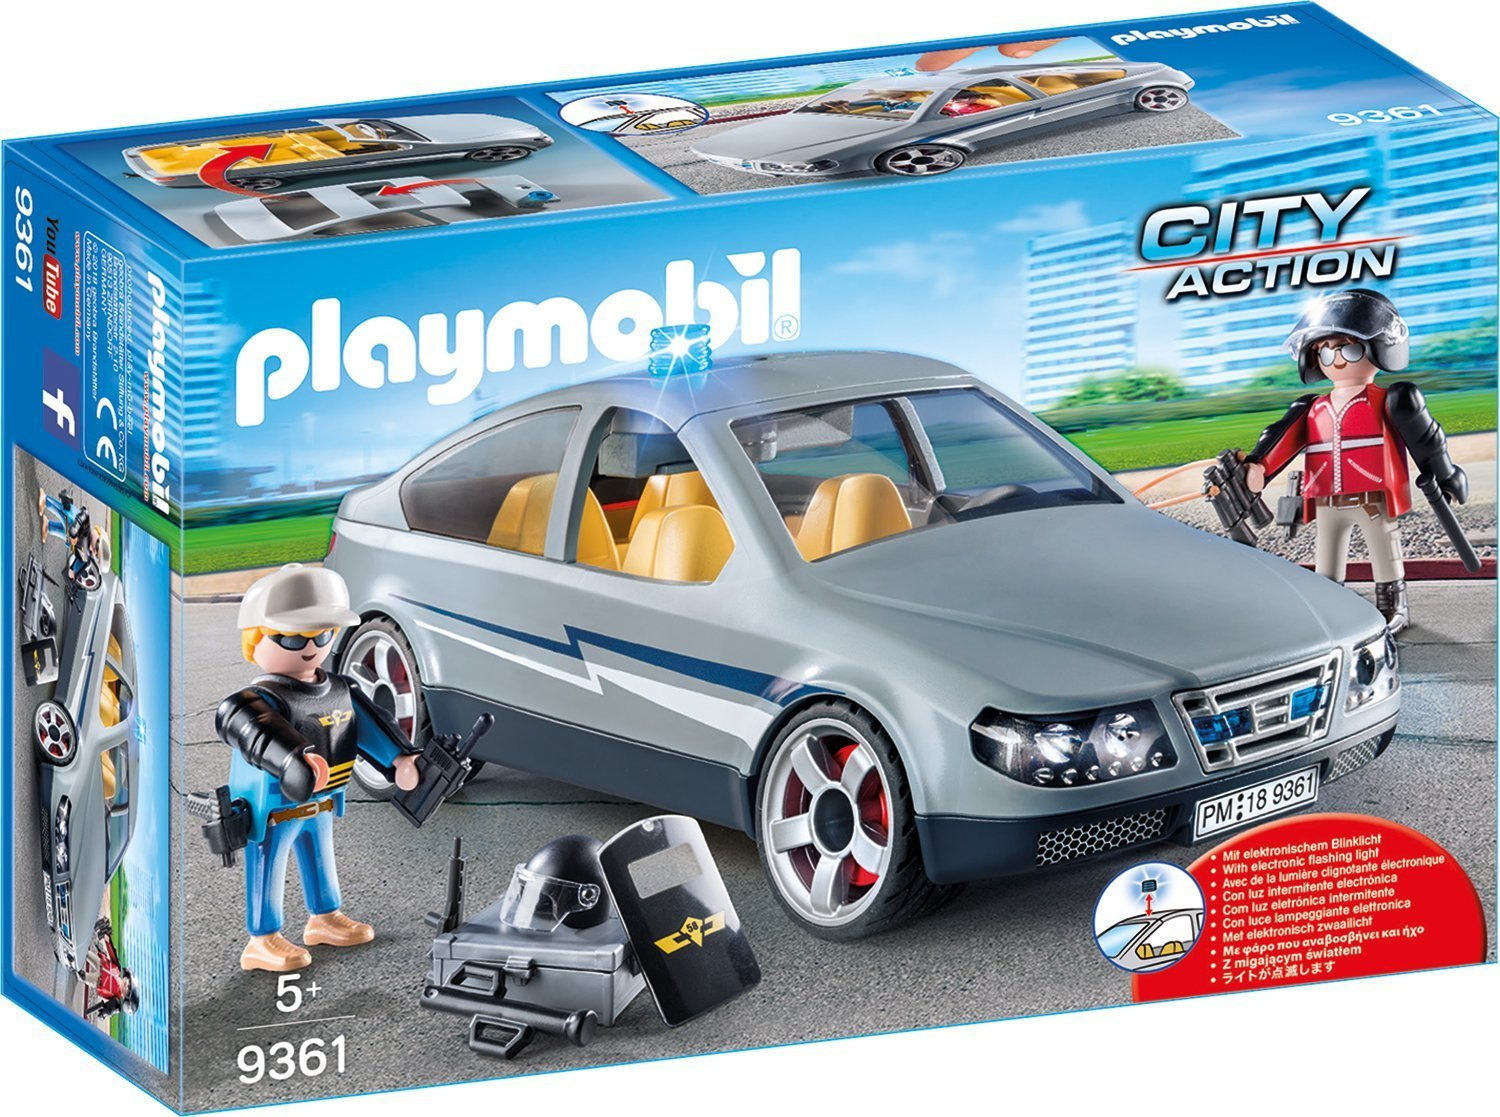 playmobil city action swat undercover car. Black Bedroom Furniture Sets. Home Design Ideas